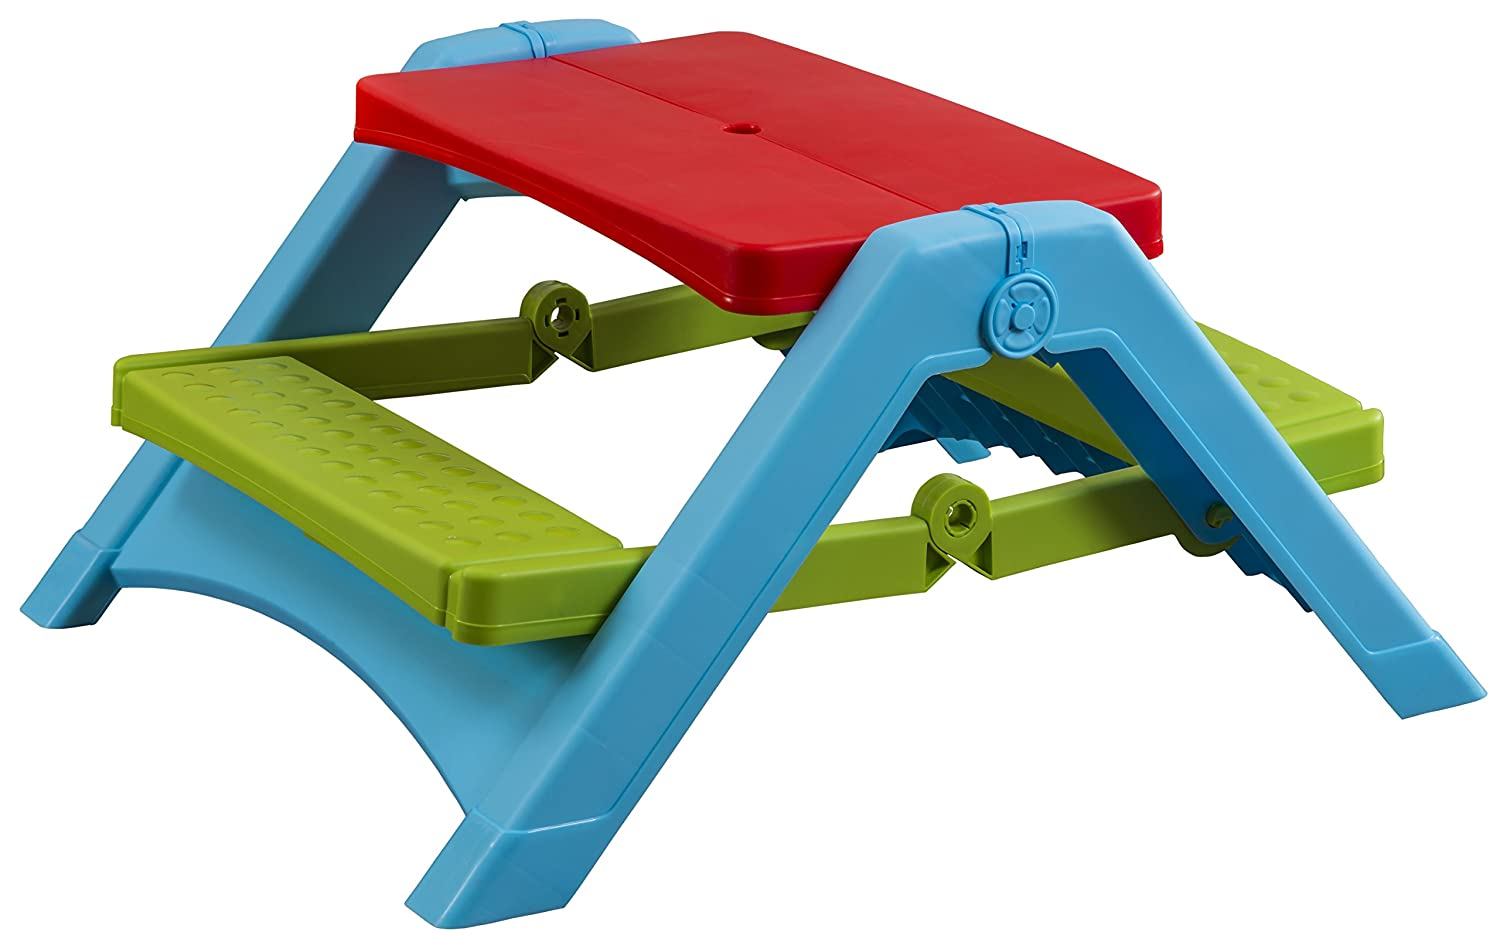 Superbe Amazon.com: Pal Play 300 0376 Foldable Picnic Table, Red, Green U0026 Blue:  Toys U0026 Games